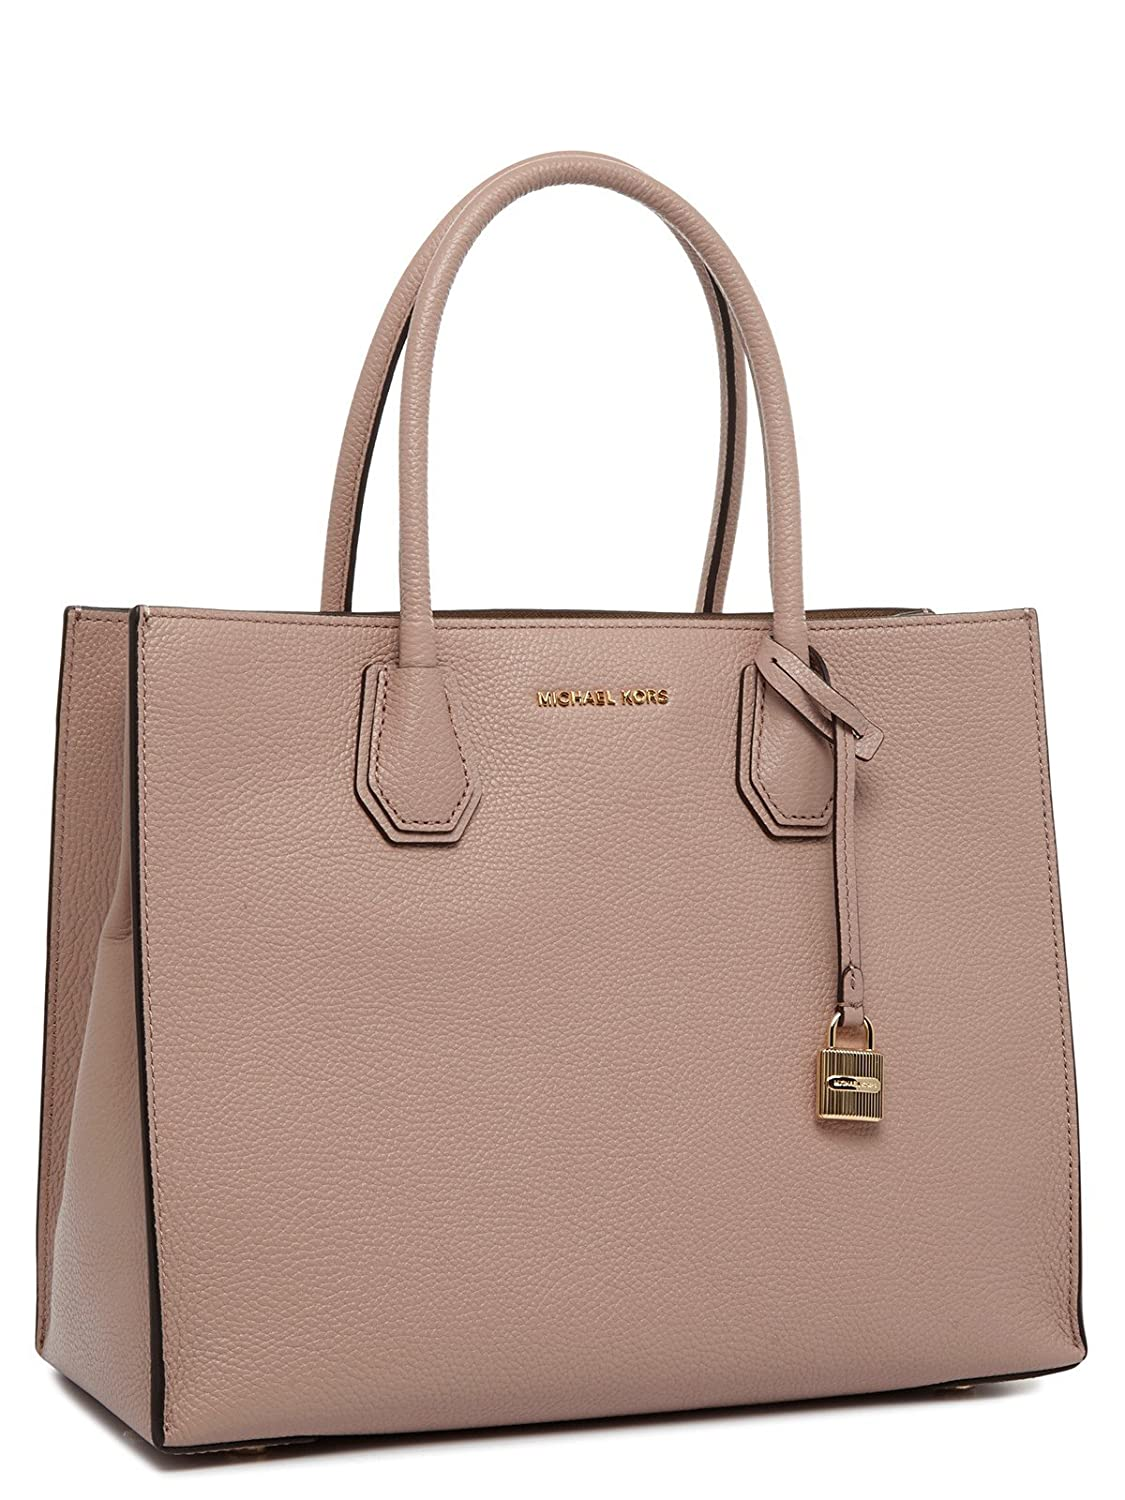 d994121a9125df Amazon.com: Michael Kors Women's Mercer Large Cong Tote, Fawn: Clothing